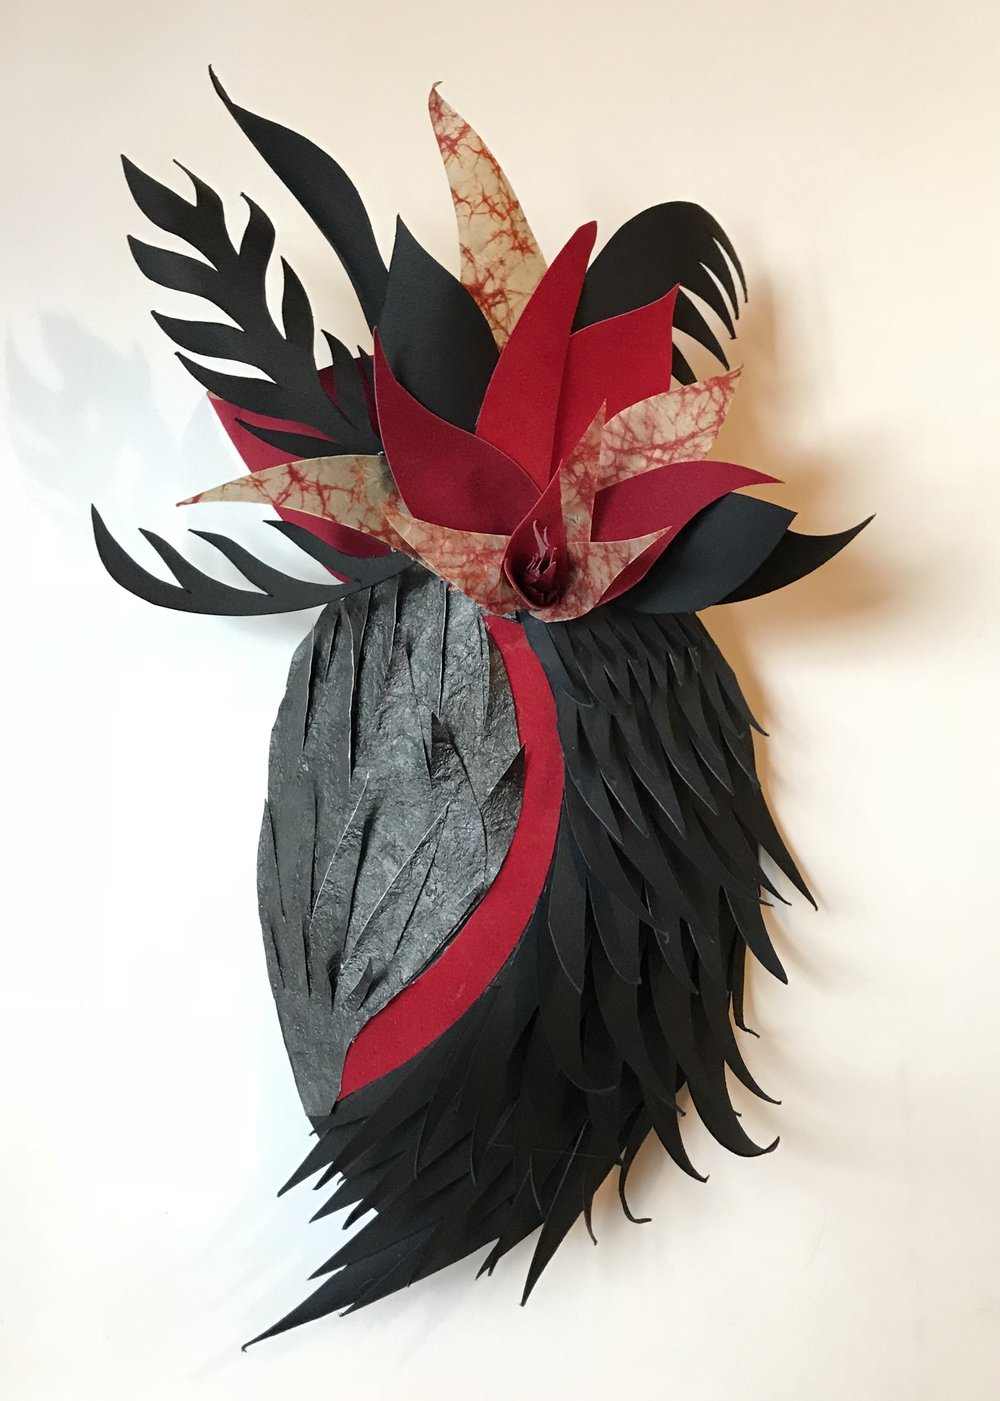 Black Swan | 2018 | Paper and glue | 11 x 7 x 4 ½ in.